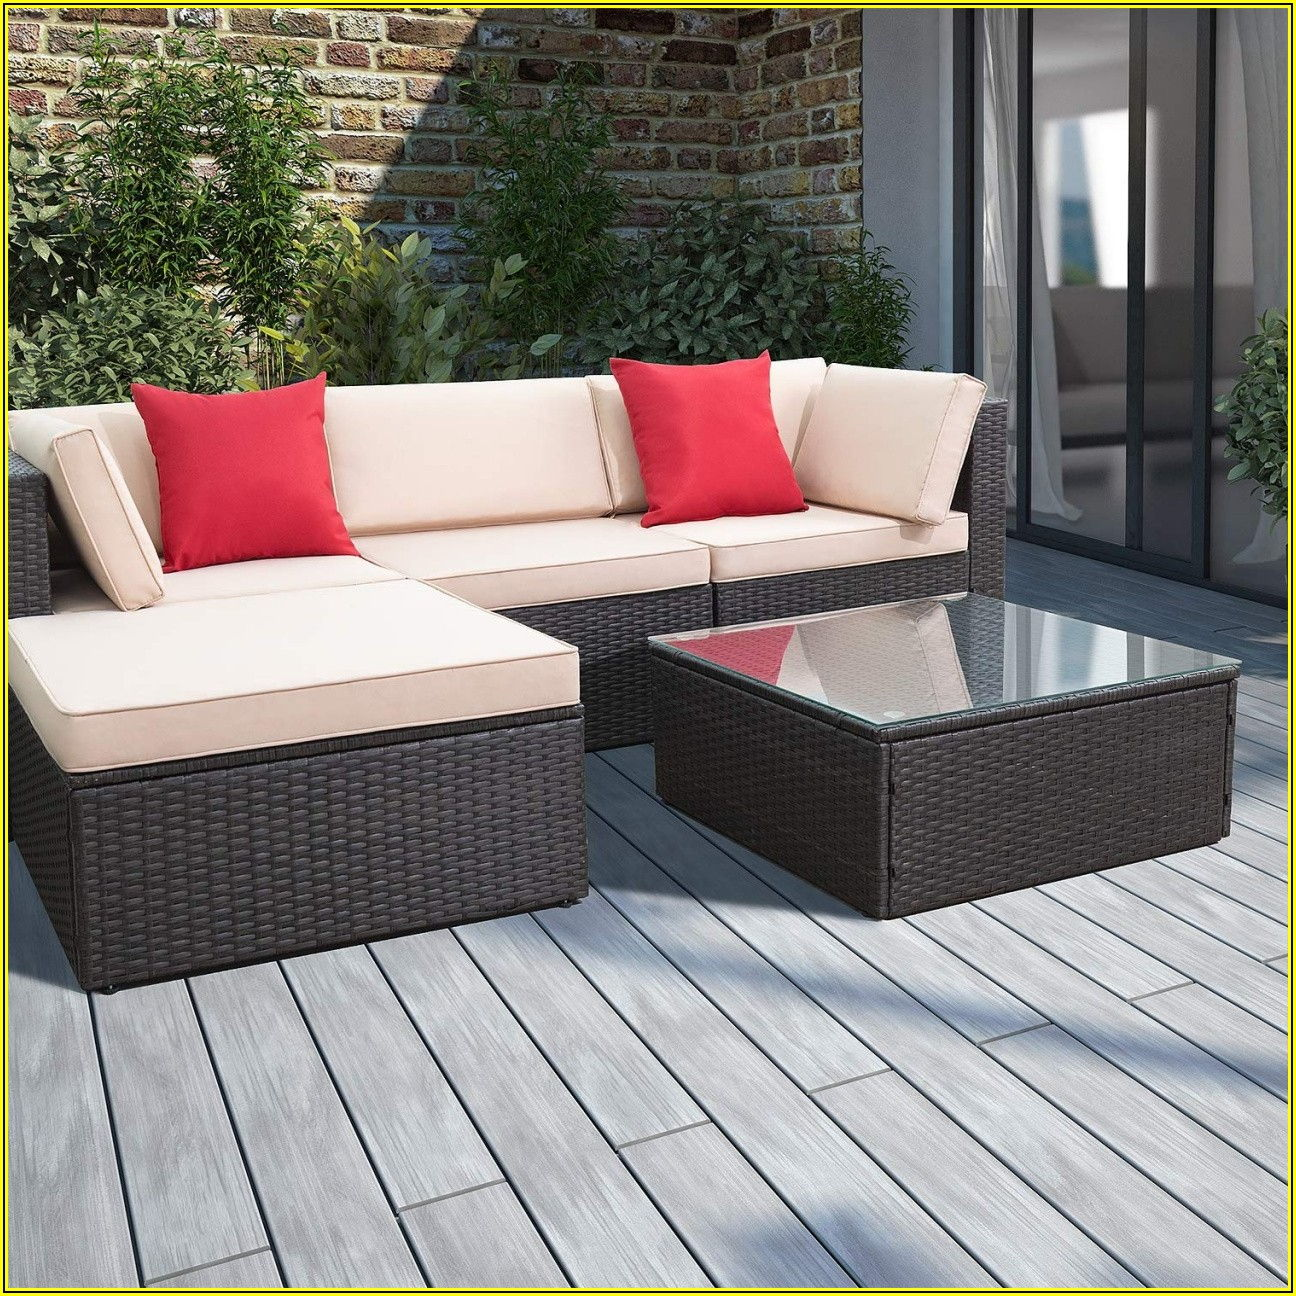 Patio Furniture Sets Under 300